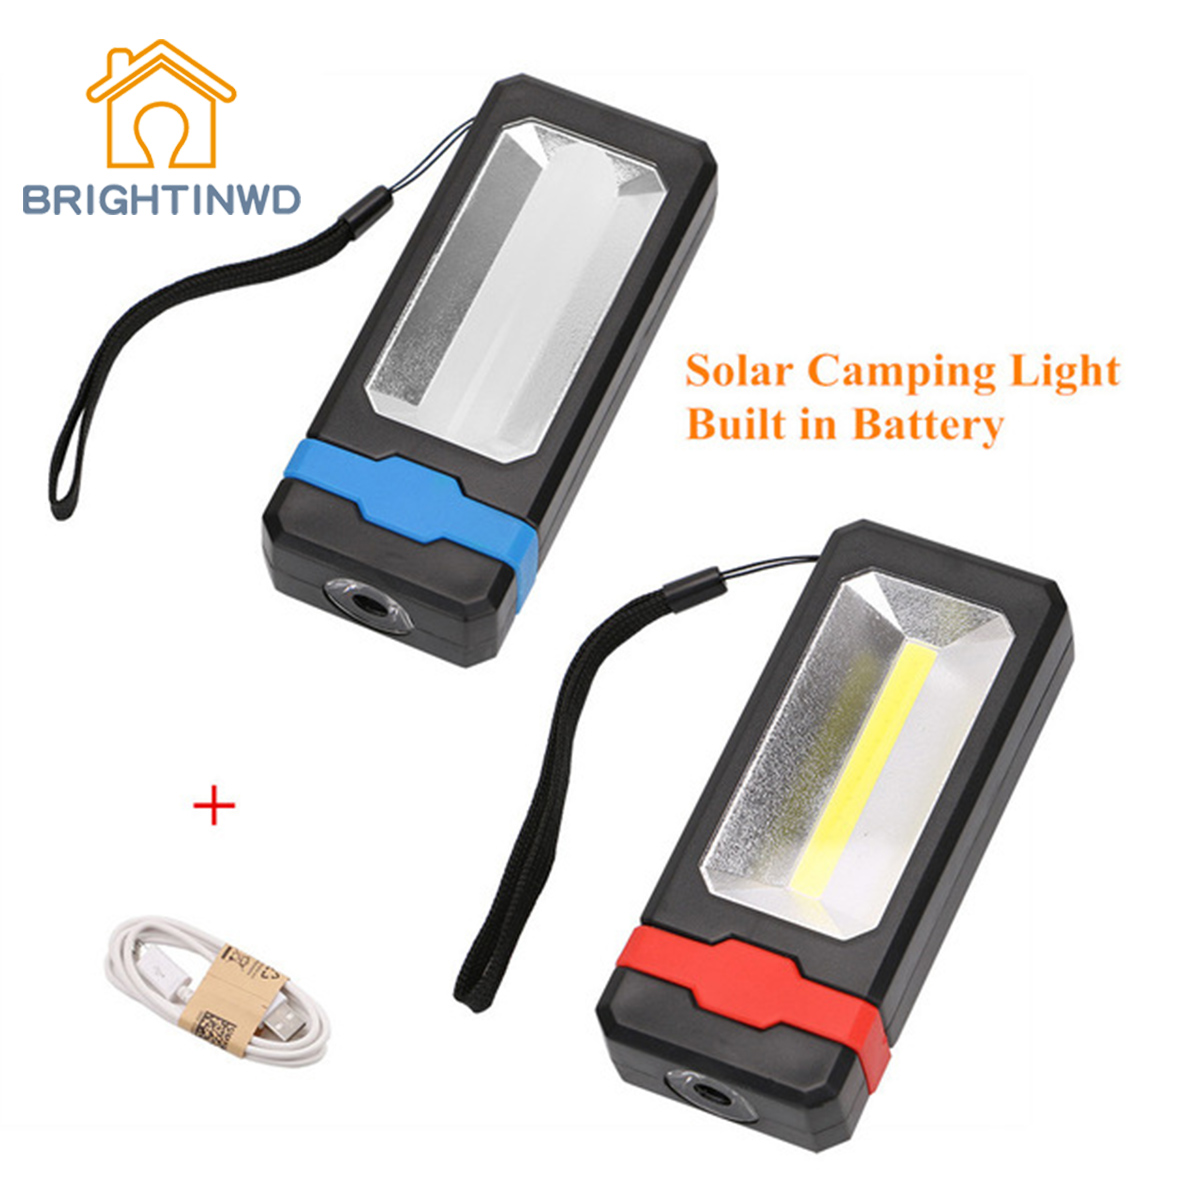 BRIGHTINWD 2LED Outdoor Camping Light Solar Powered Magnetic Work Light Lamp Portable Power Phone USB Charging Camping Lantern